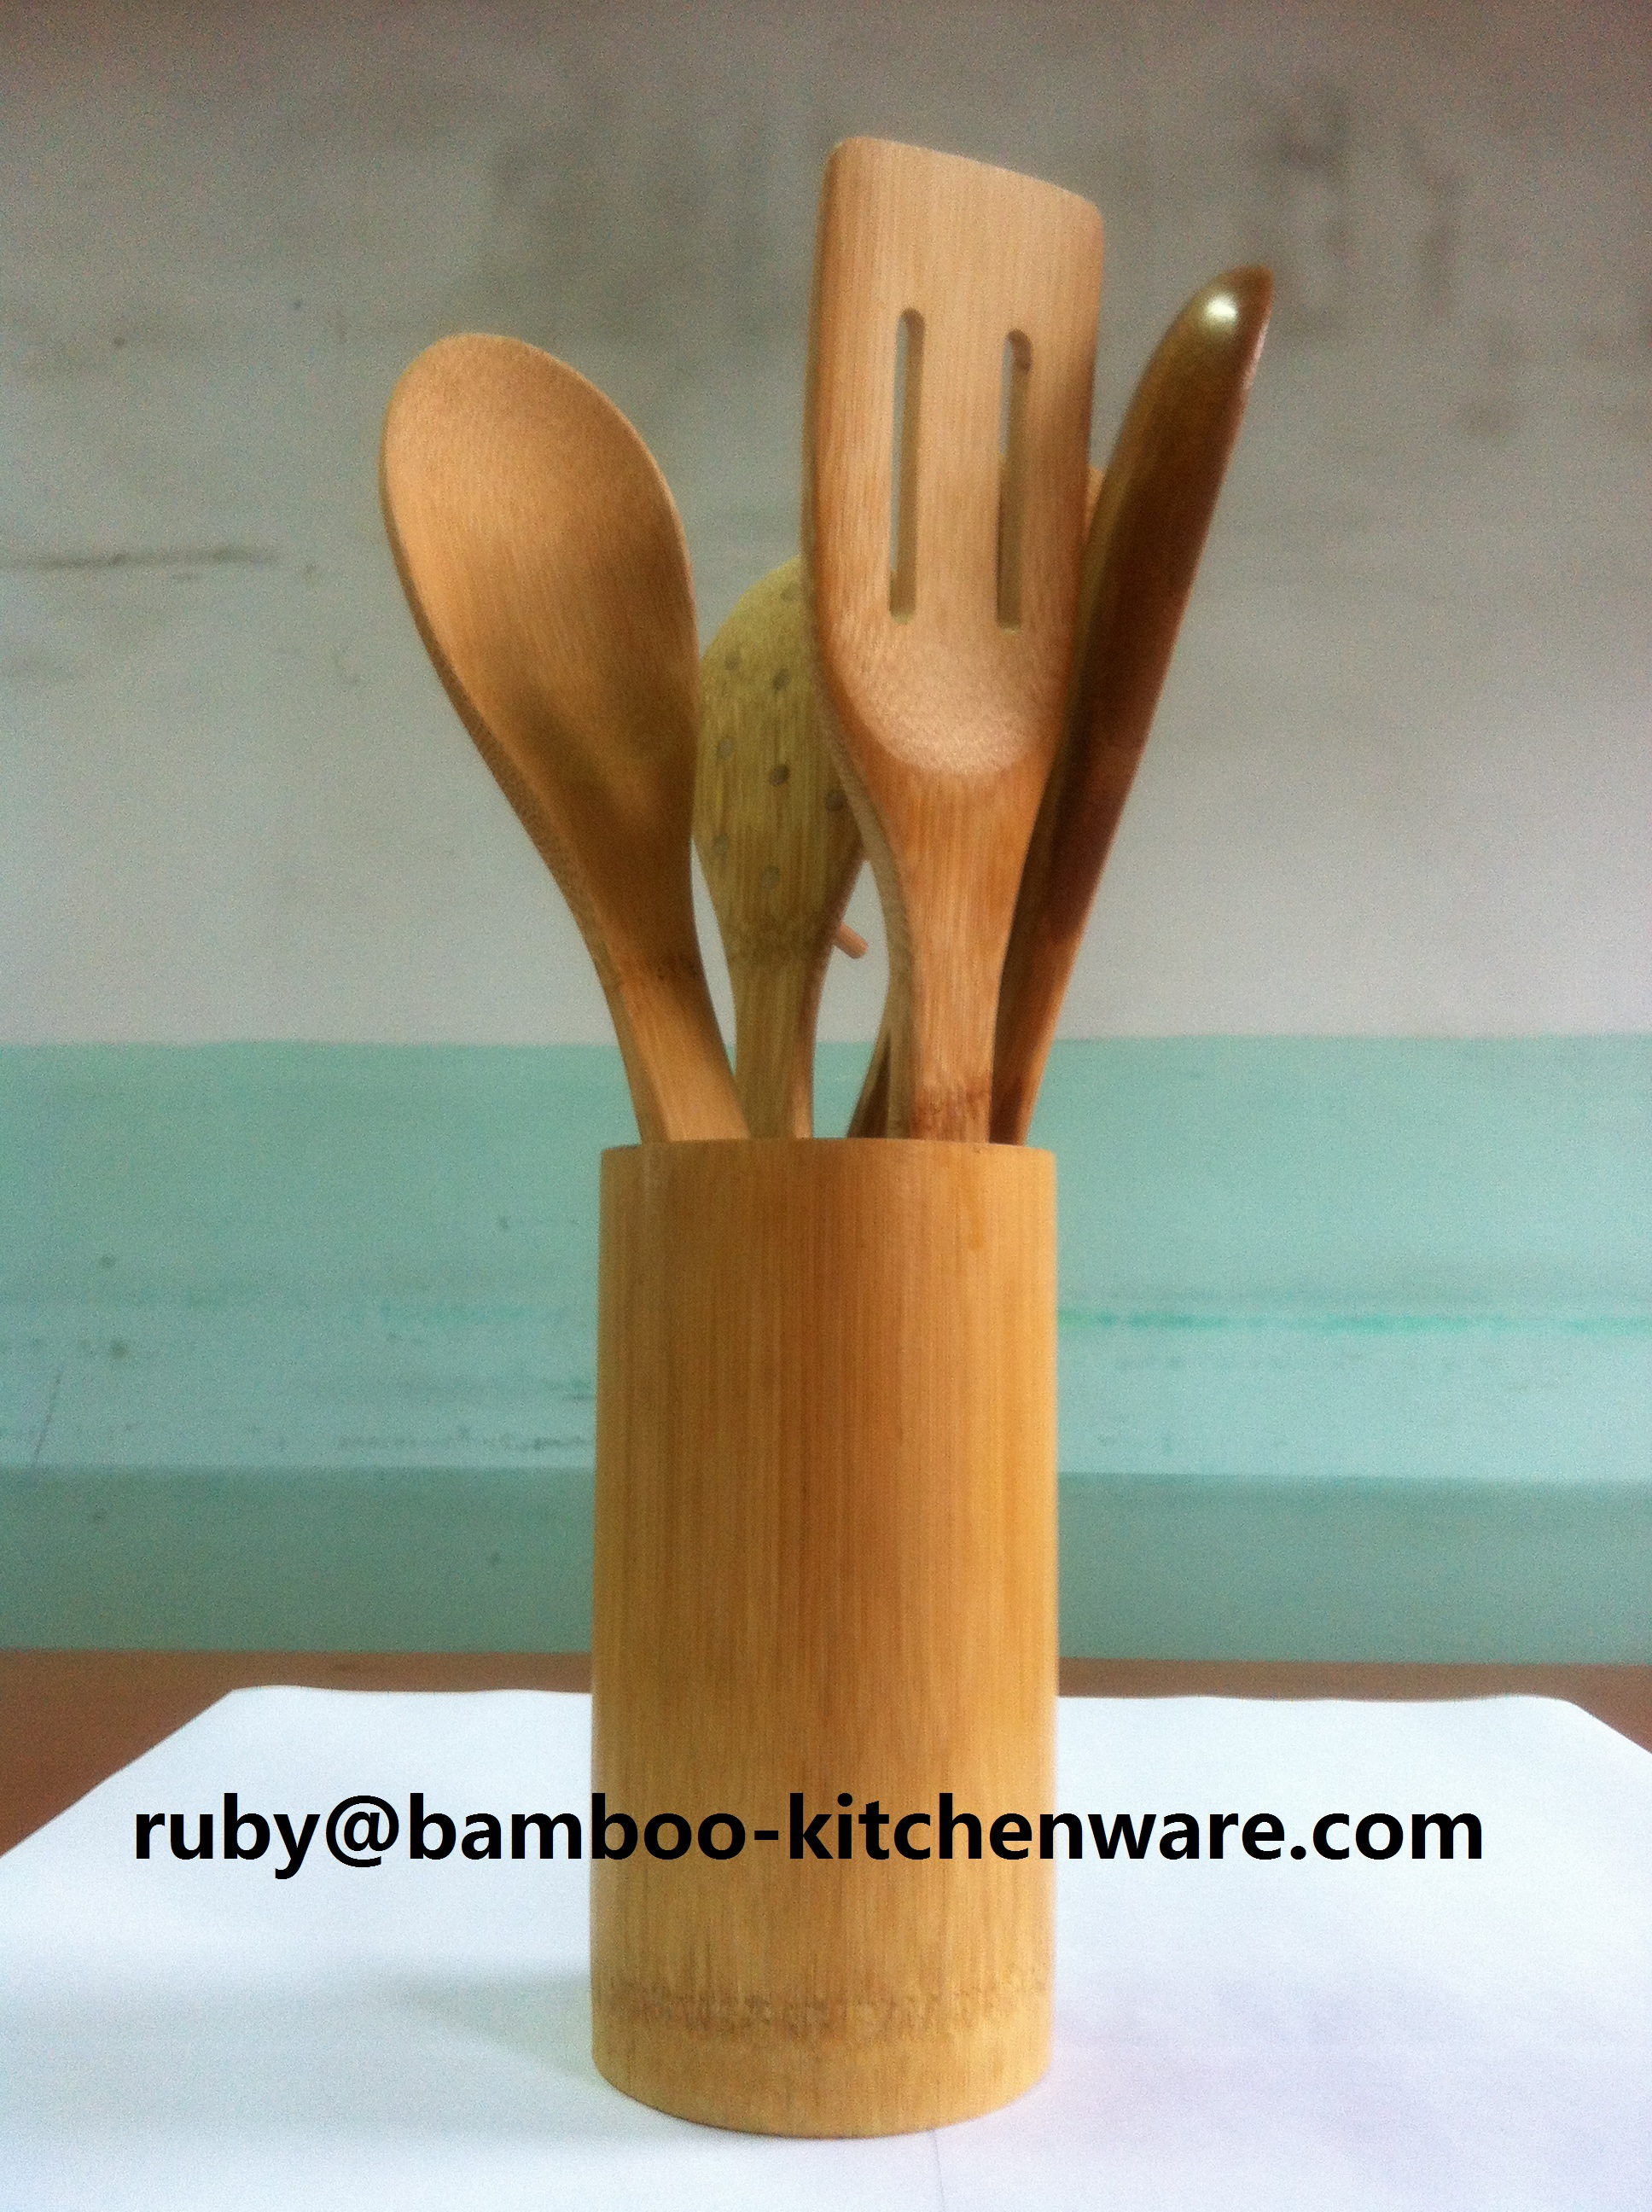 6 Bamboo Wooden Spoons and Kitchen Tools Spatula Set